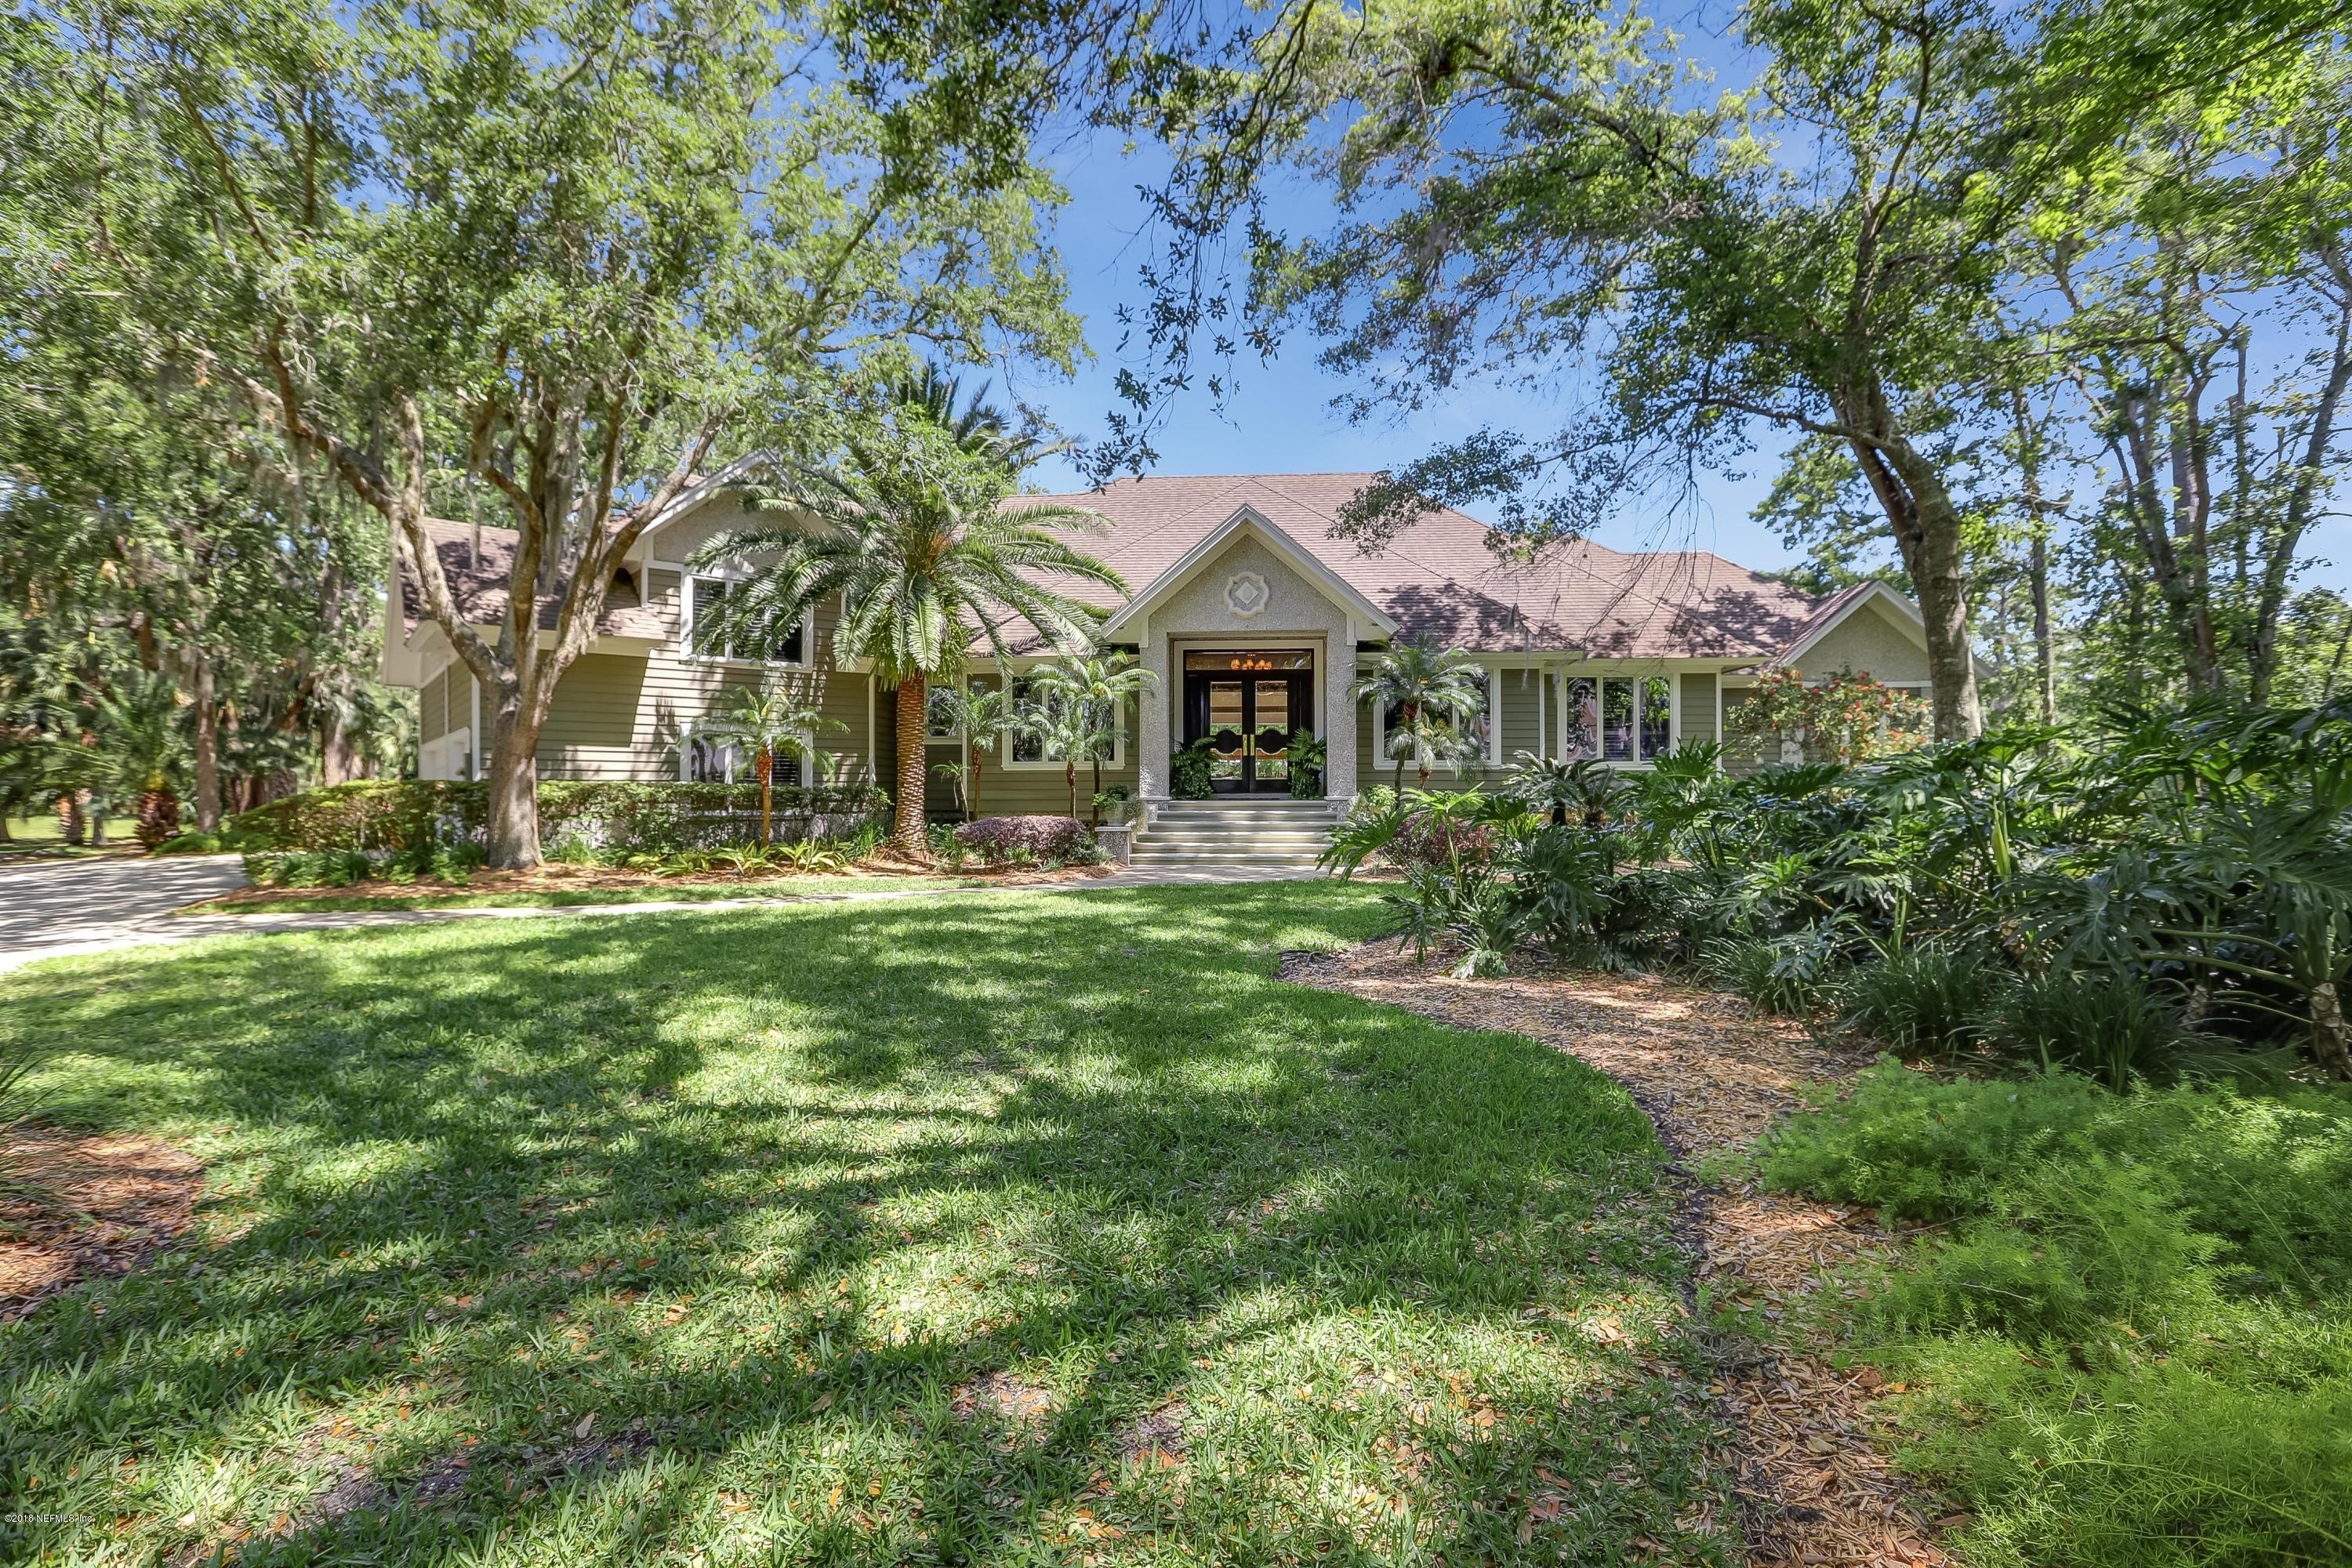 104 LINKSIDE, PONTE VEDRA BEACH, FLORIDA 32082, 5 Bedrooms Bedrooms, ,3 BathroomsBathrooms,Residential - single family,For sale,LINKSIDE,934640